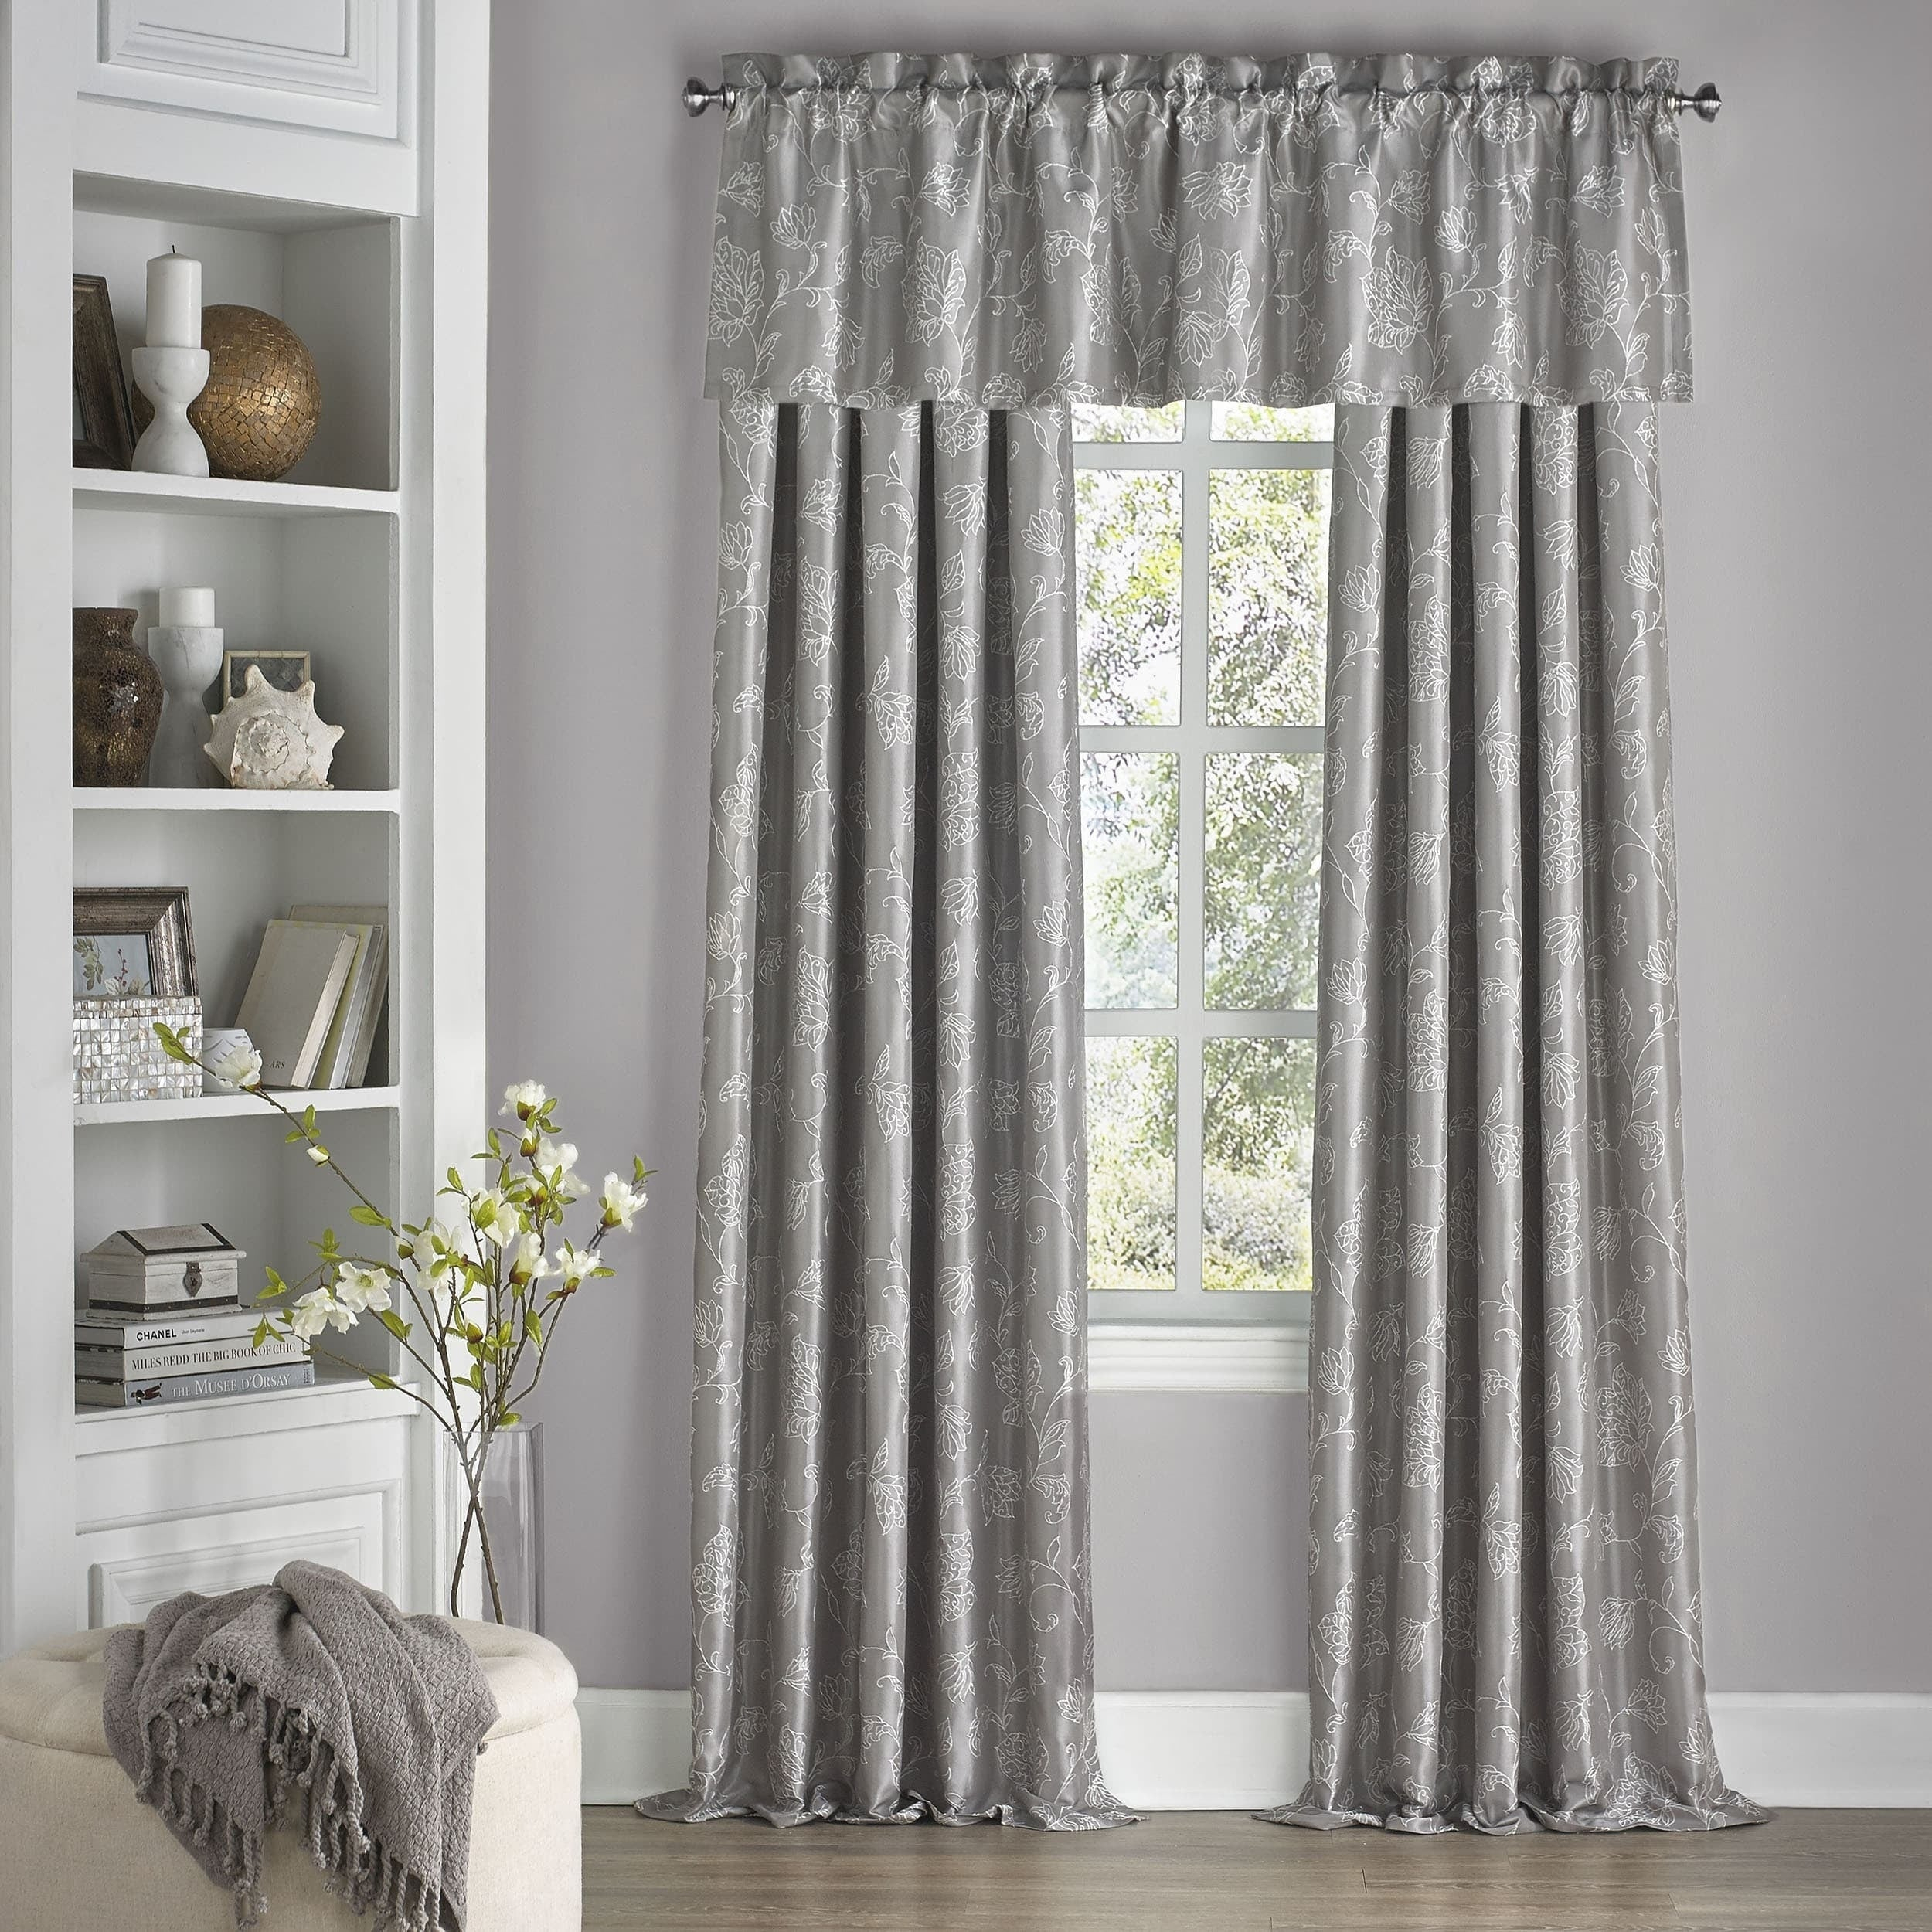 Eclipse Mallory Floral Blackout Window Curtain Panel Regarding Eclipse Corinne Thermaback Curtain Panels (View 16 of 20)